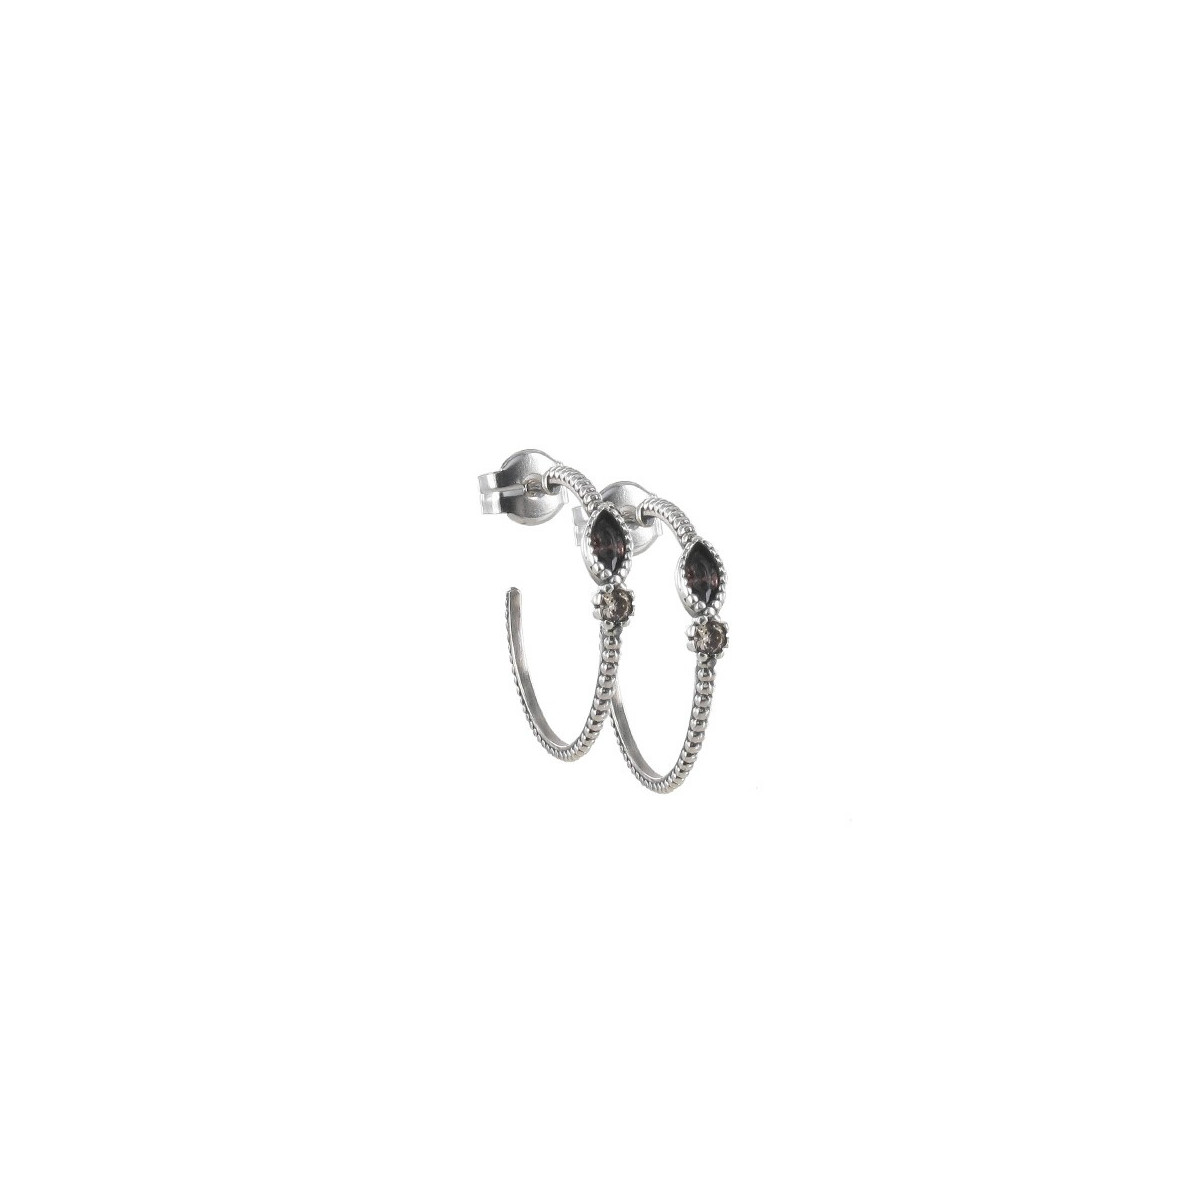 SILVER EARRINGS WITH STONES